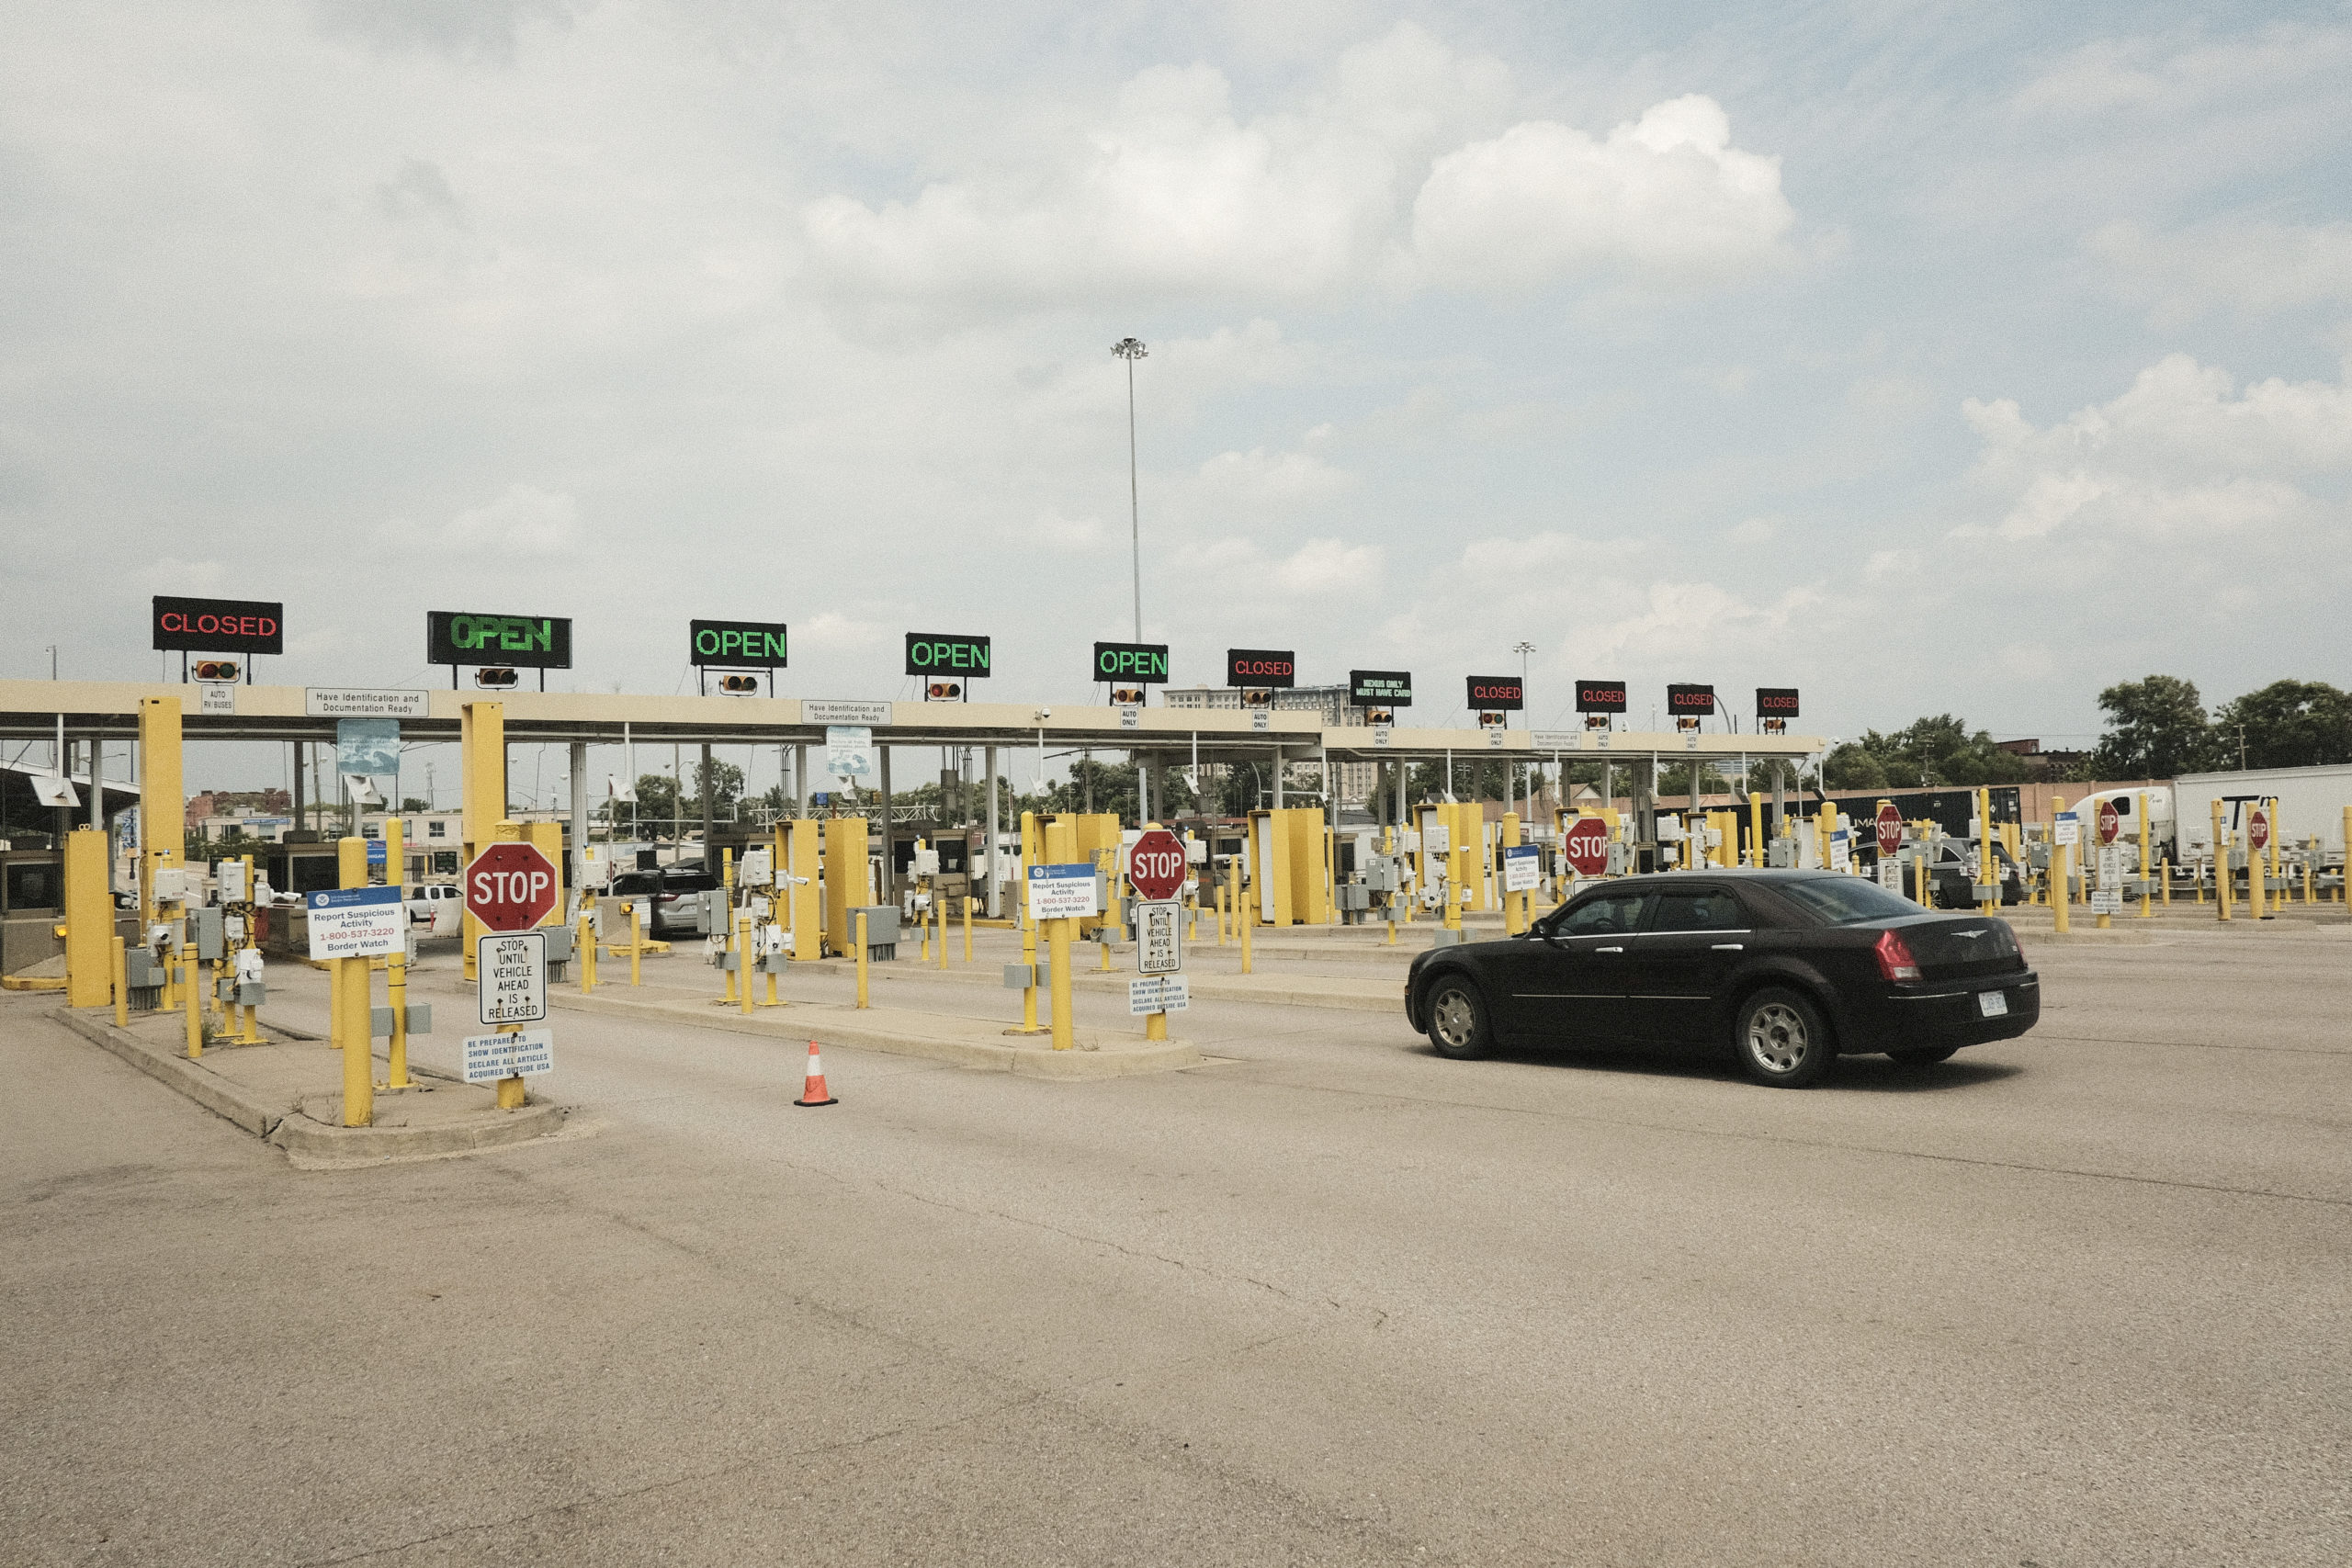 DETROIT, MI - AUGUST 09: A vehicle enters the Ambassador BrIdge Port of Entry to cross into Canada, which has opened its borders to U.S. citizens who can provide proof of vaccination and a negative Covid-19 test on August 9, 2021 in Detroit, Michigan. The border had been closed to non-essential travel since March 2020. (Photo by Matthew Hatcher/Getty Images)